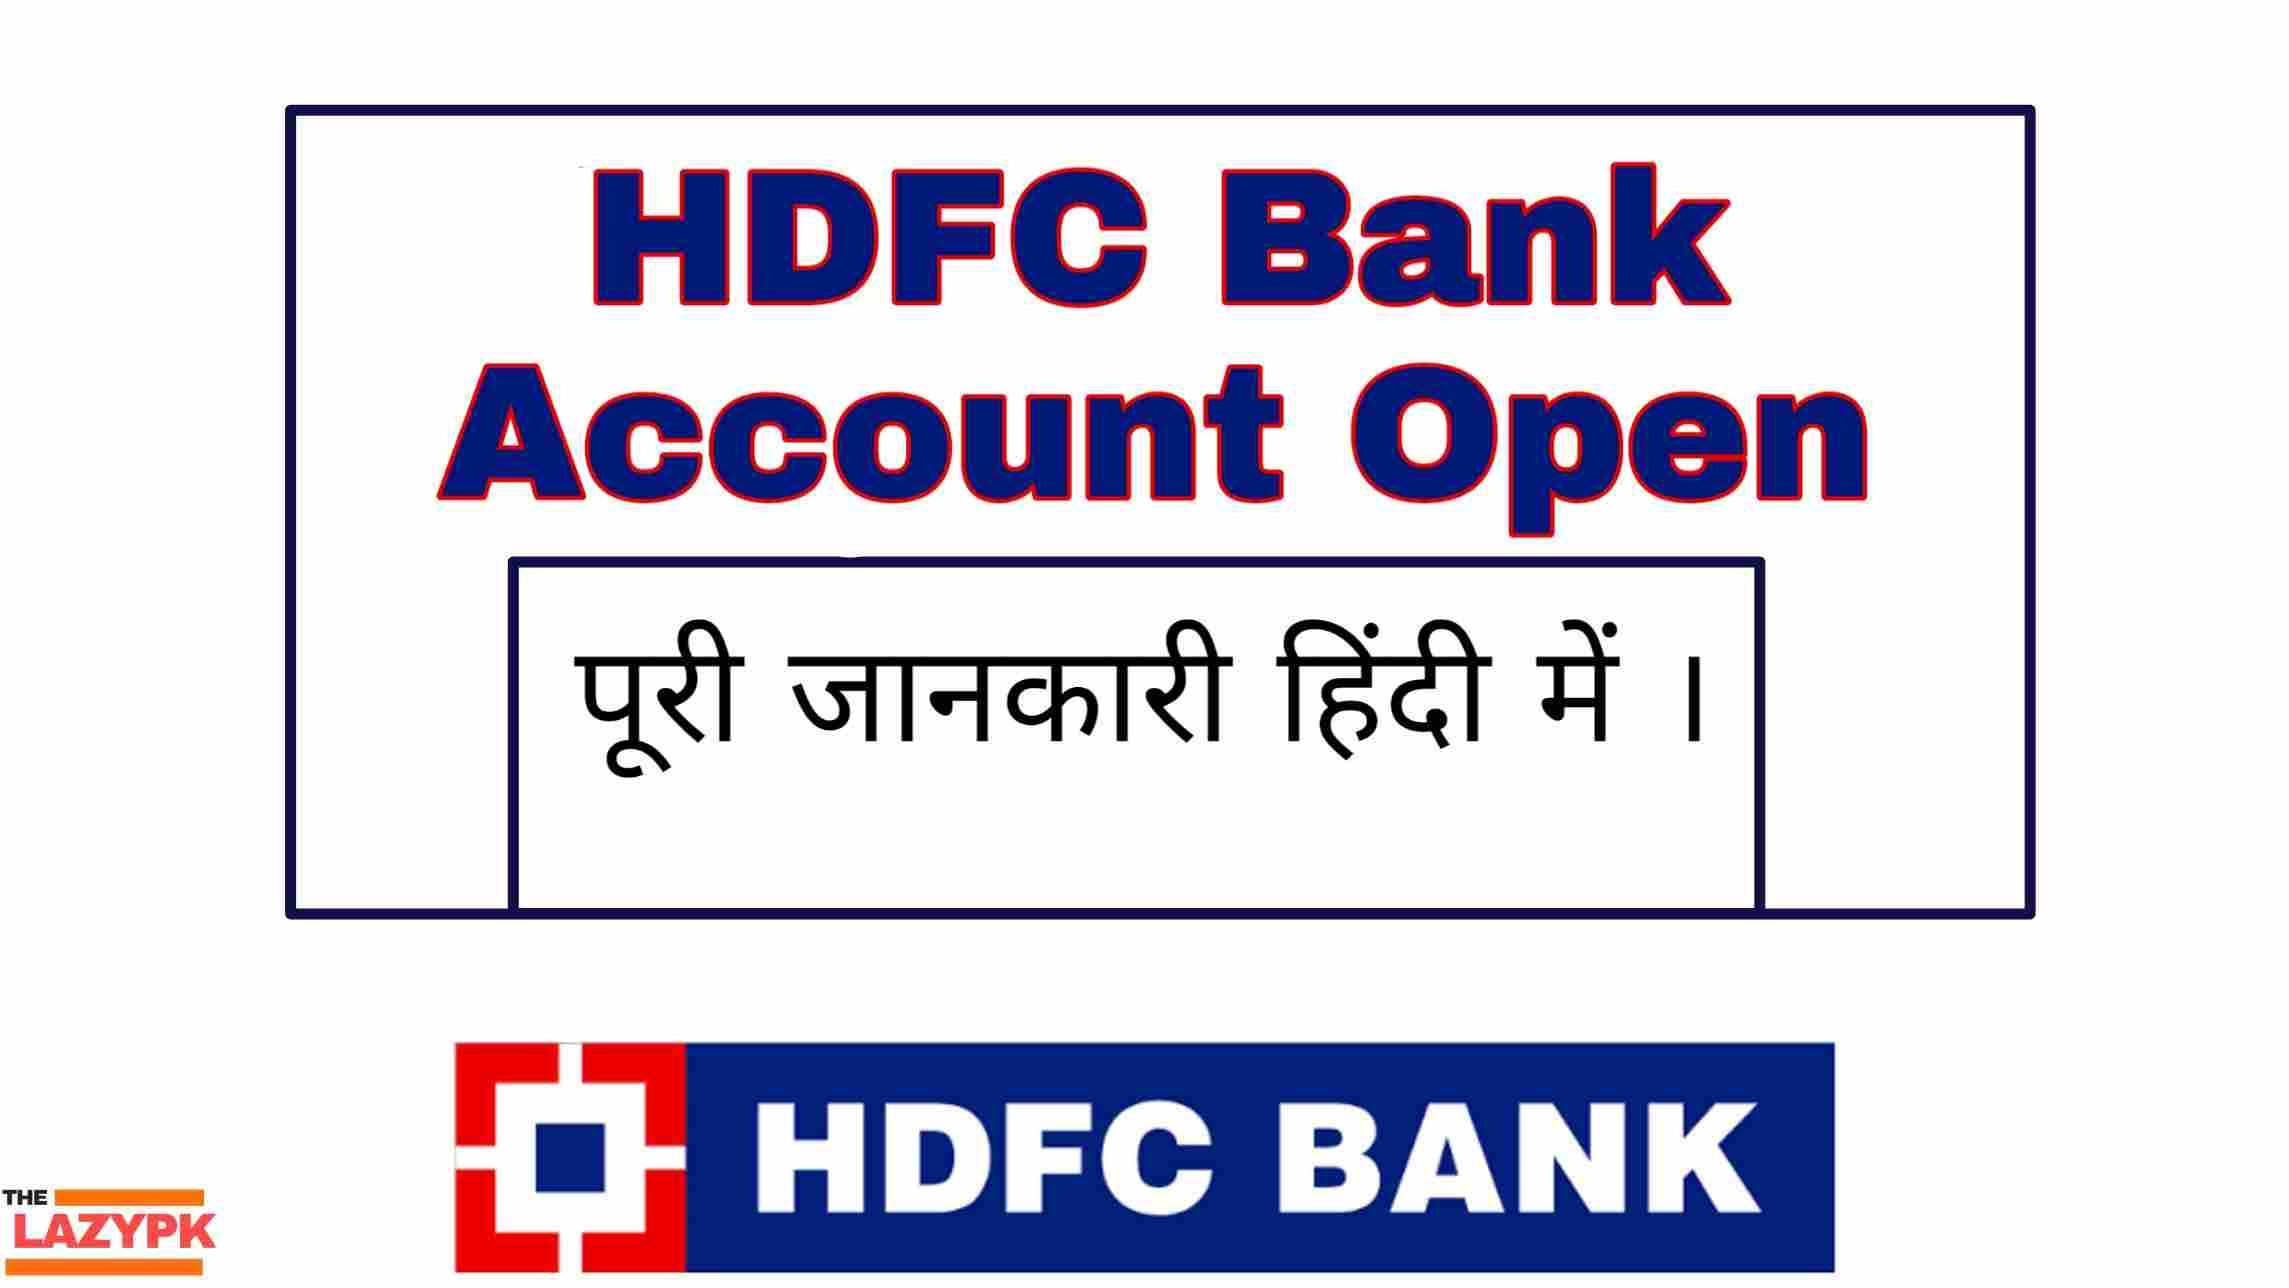 HDFC Bank Account Open